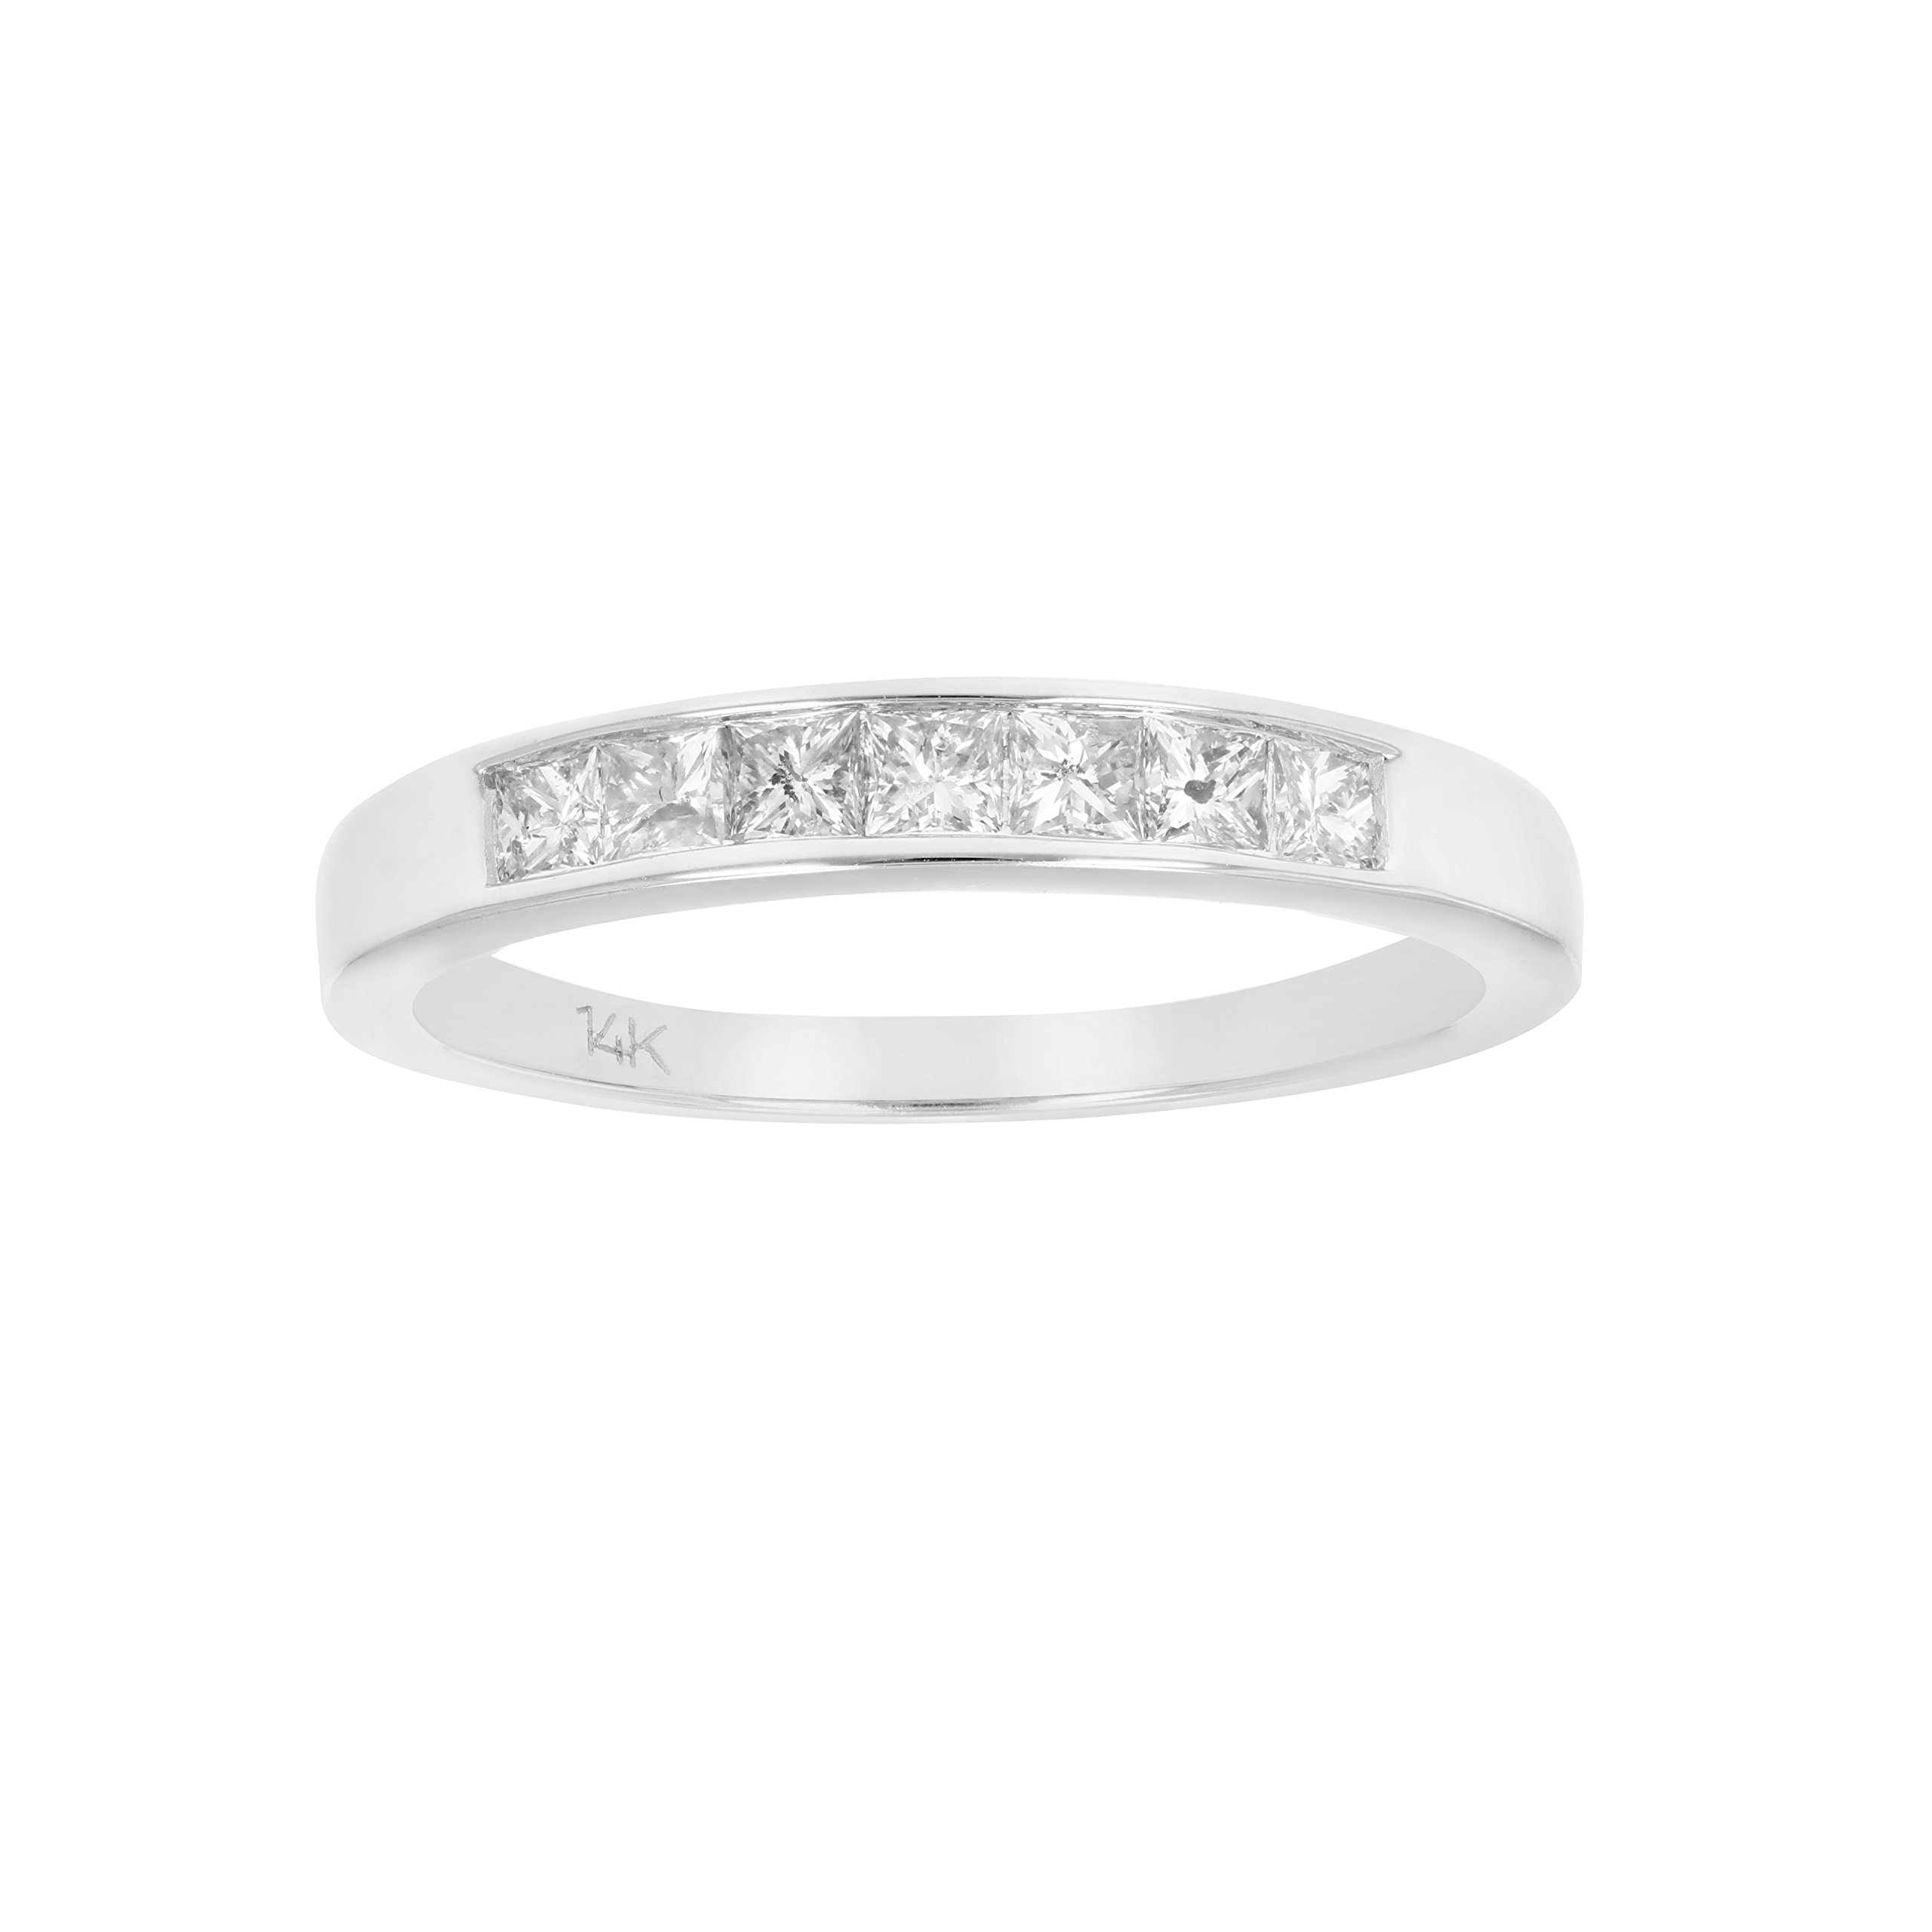 1/2 CT 7 Stones Princess Diamond Wedding Band in 14K White Gold In Size 7